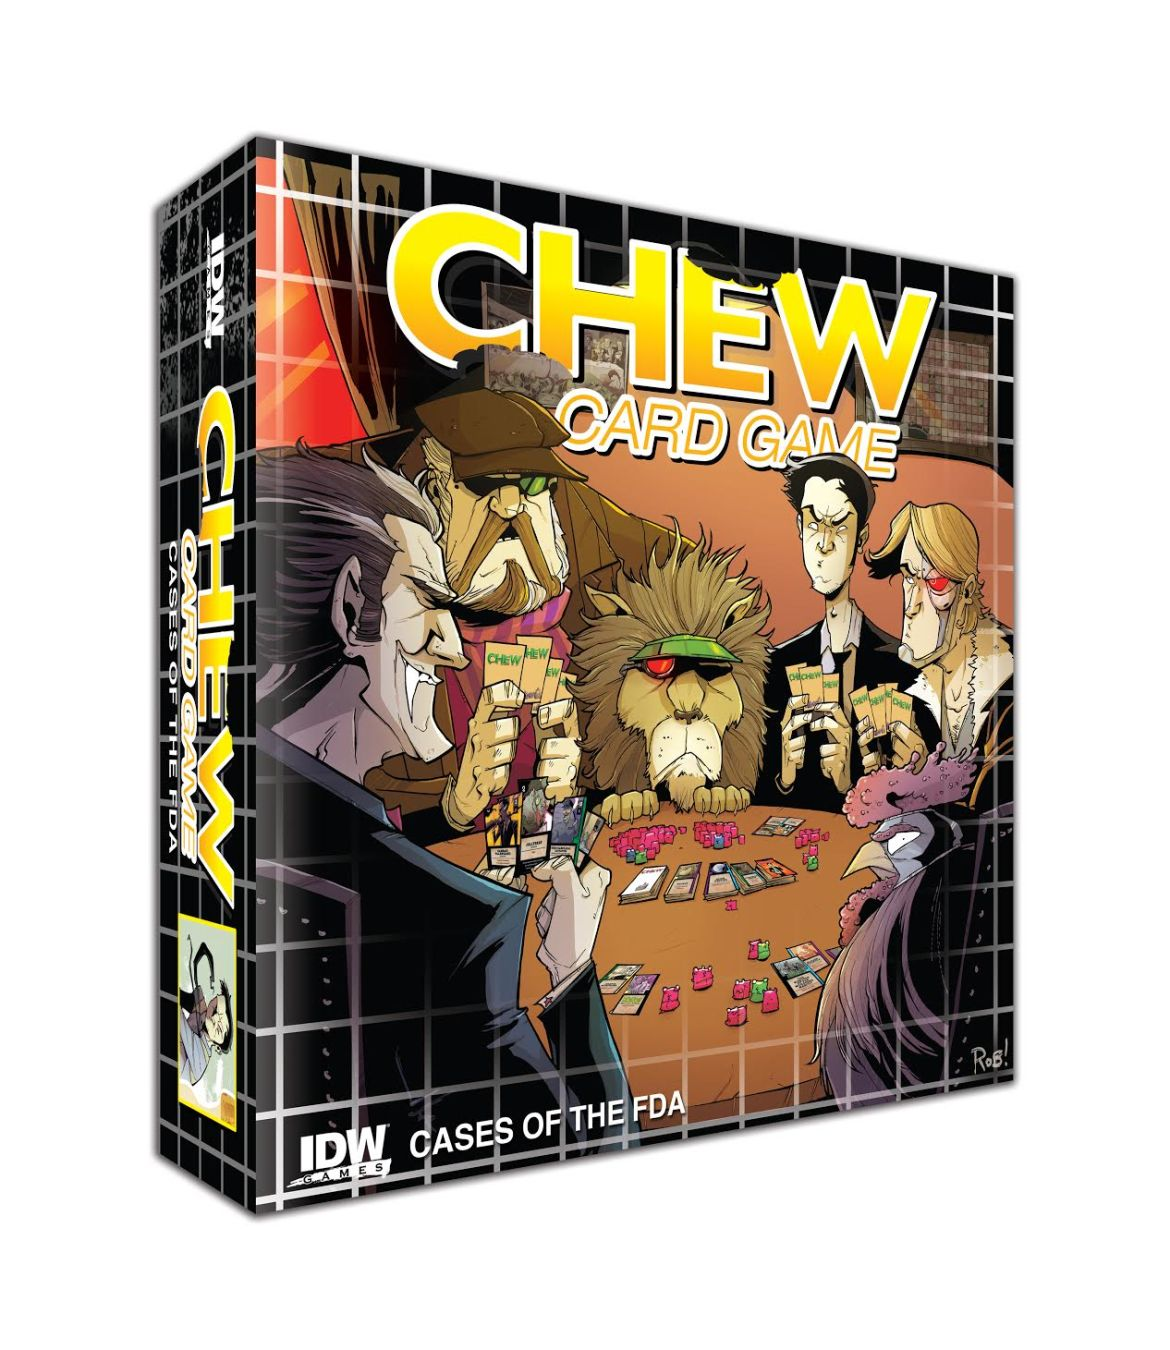 fa8e7cb6-d196-4c3c-a00e-ddd99651154b Pre-ordered CHEW: CASES OF THE FDA to include CHEW #1 variant